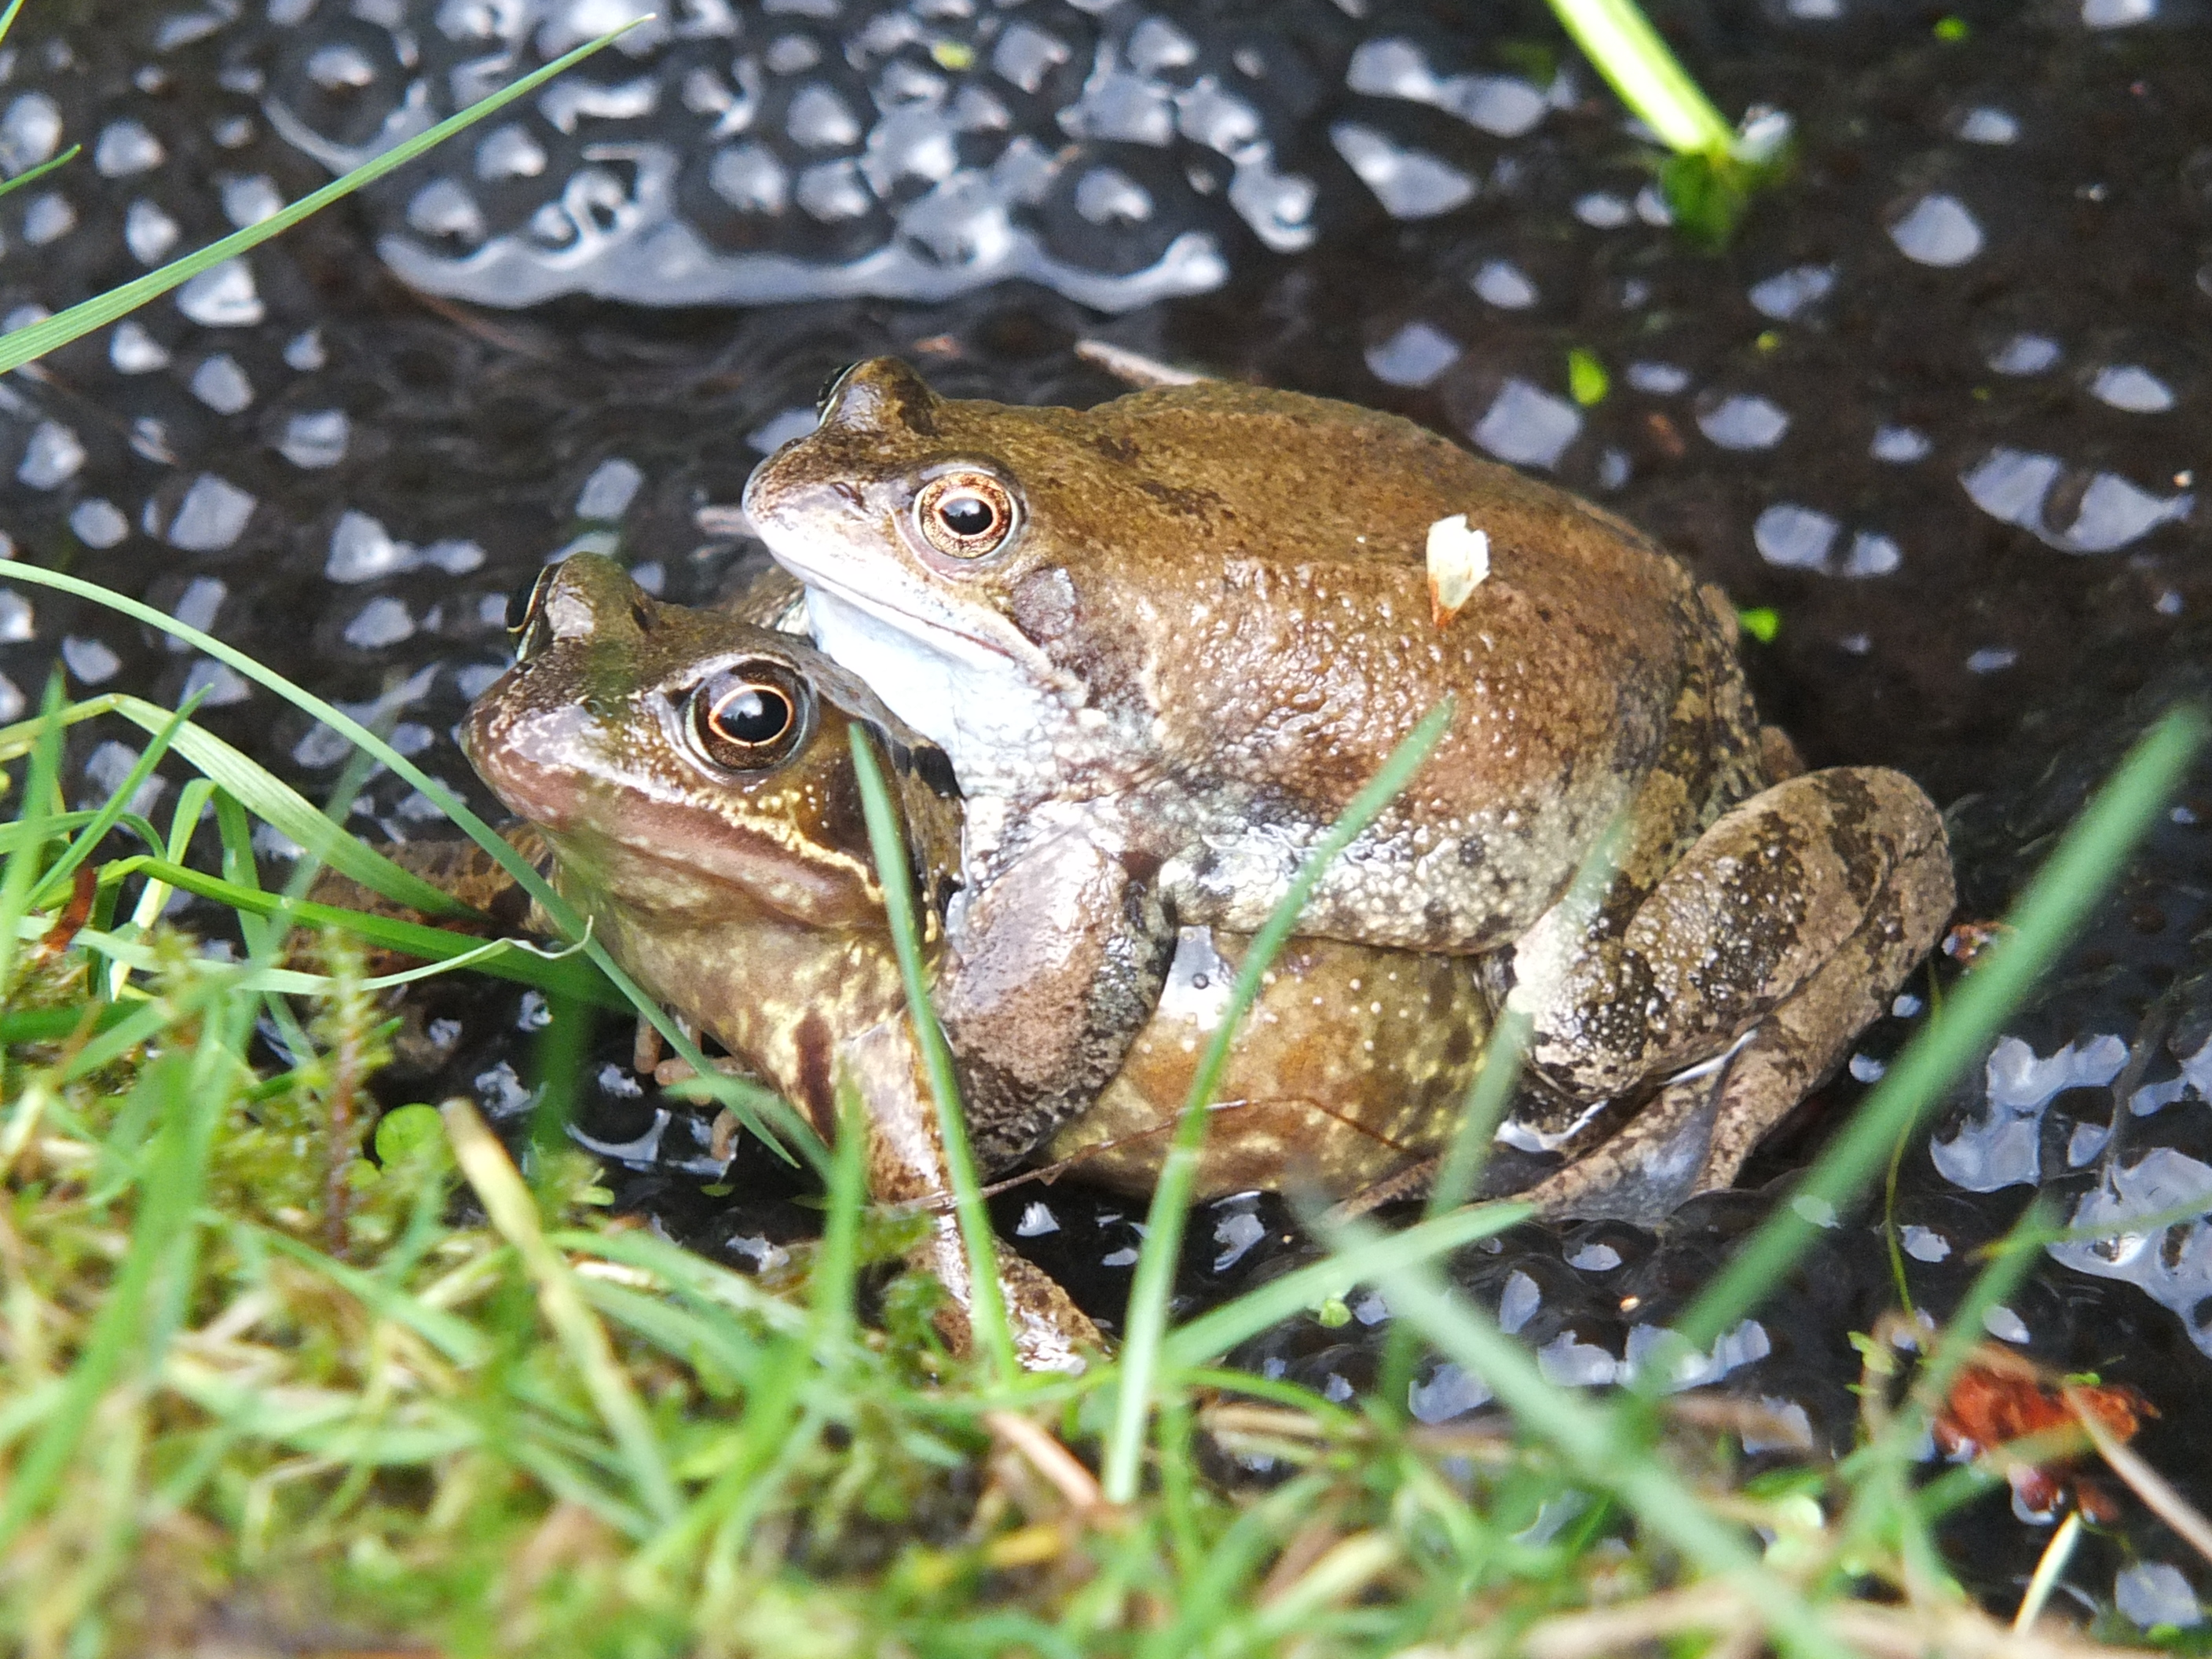 frogs 22 clumps of spawn in total in pond 20-02-2014 16-04-18NuthatchBrambling 23 JanuaryBrambling 23 JanuaryBullfinch 23 JanuarySnowdrops 4 FebruaryCyclamen 4 FebruaryMahonia 4 FebruaryCrocus 16 FebruaryFirst Bumblebee 16 FebruaryFrogs spawning 20 February